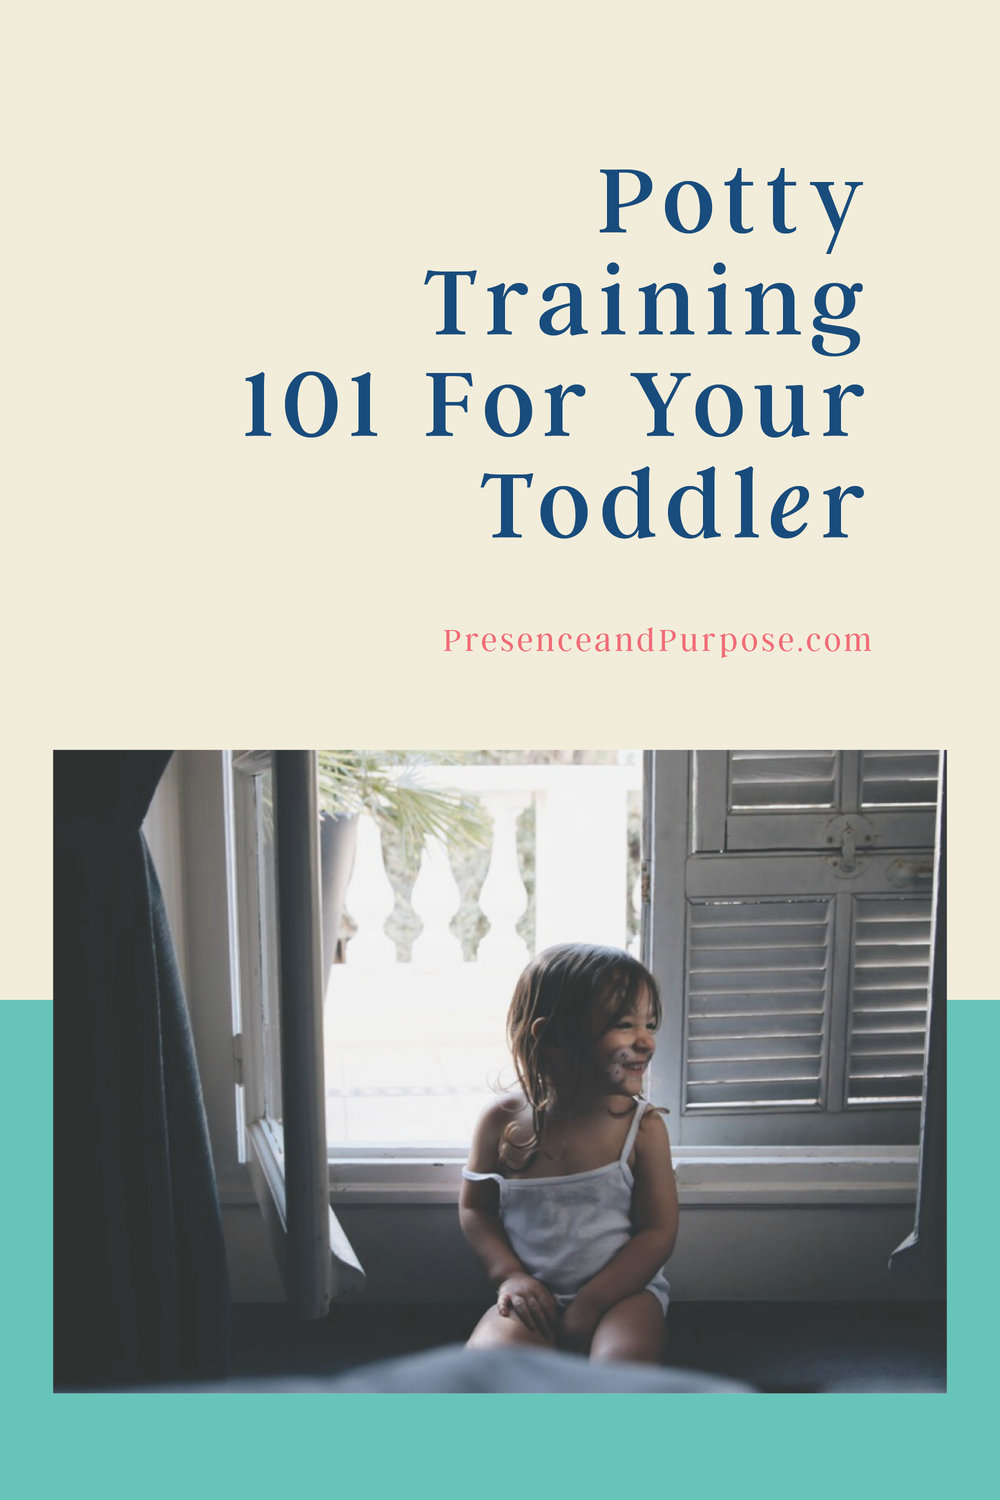 19_0114_Potty Training 101 For Your Toddler.jpg